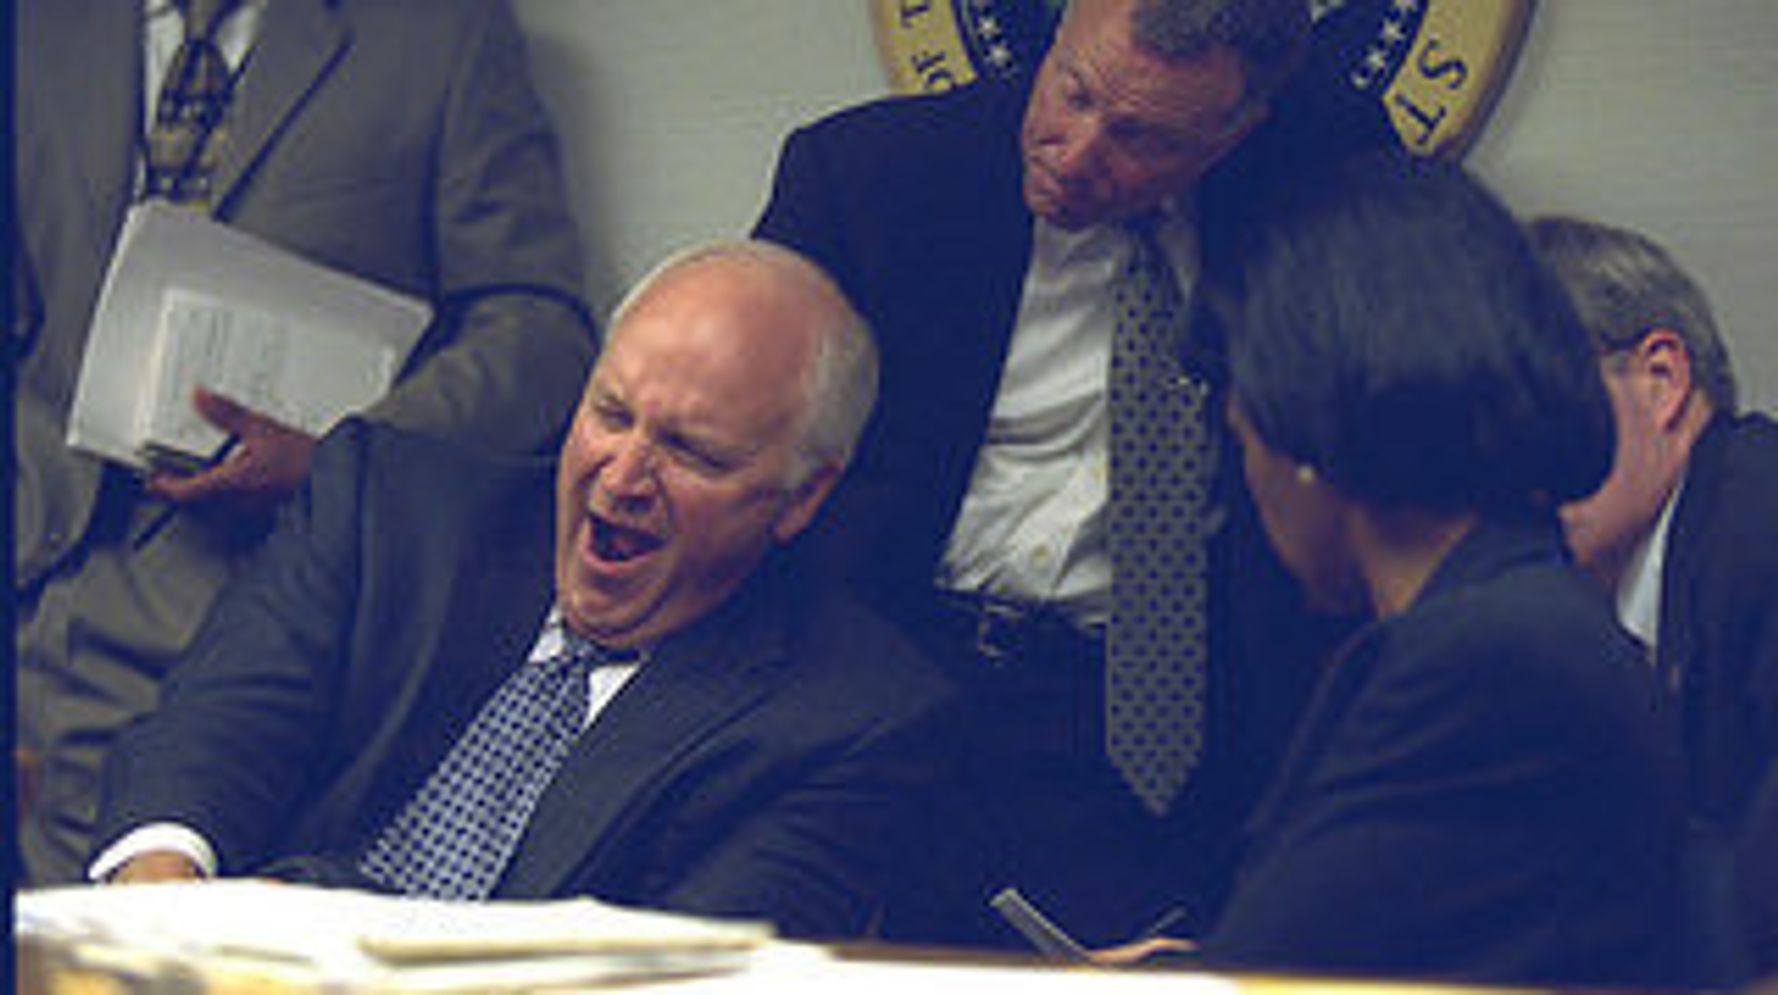 See Dick Cheney And The White House React To 9/11